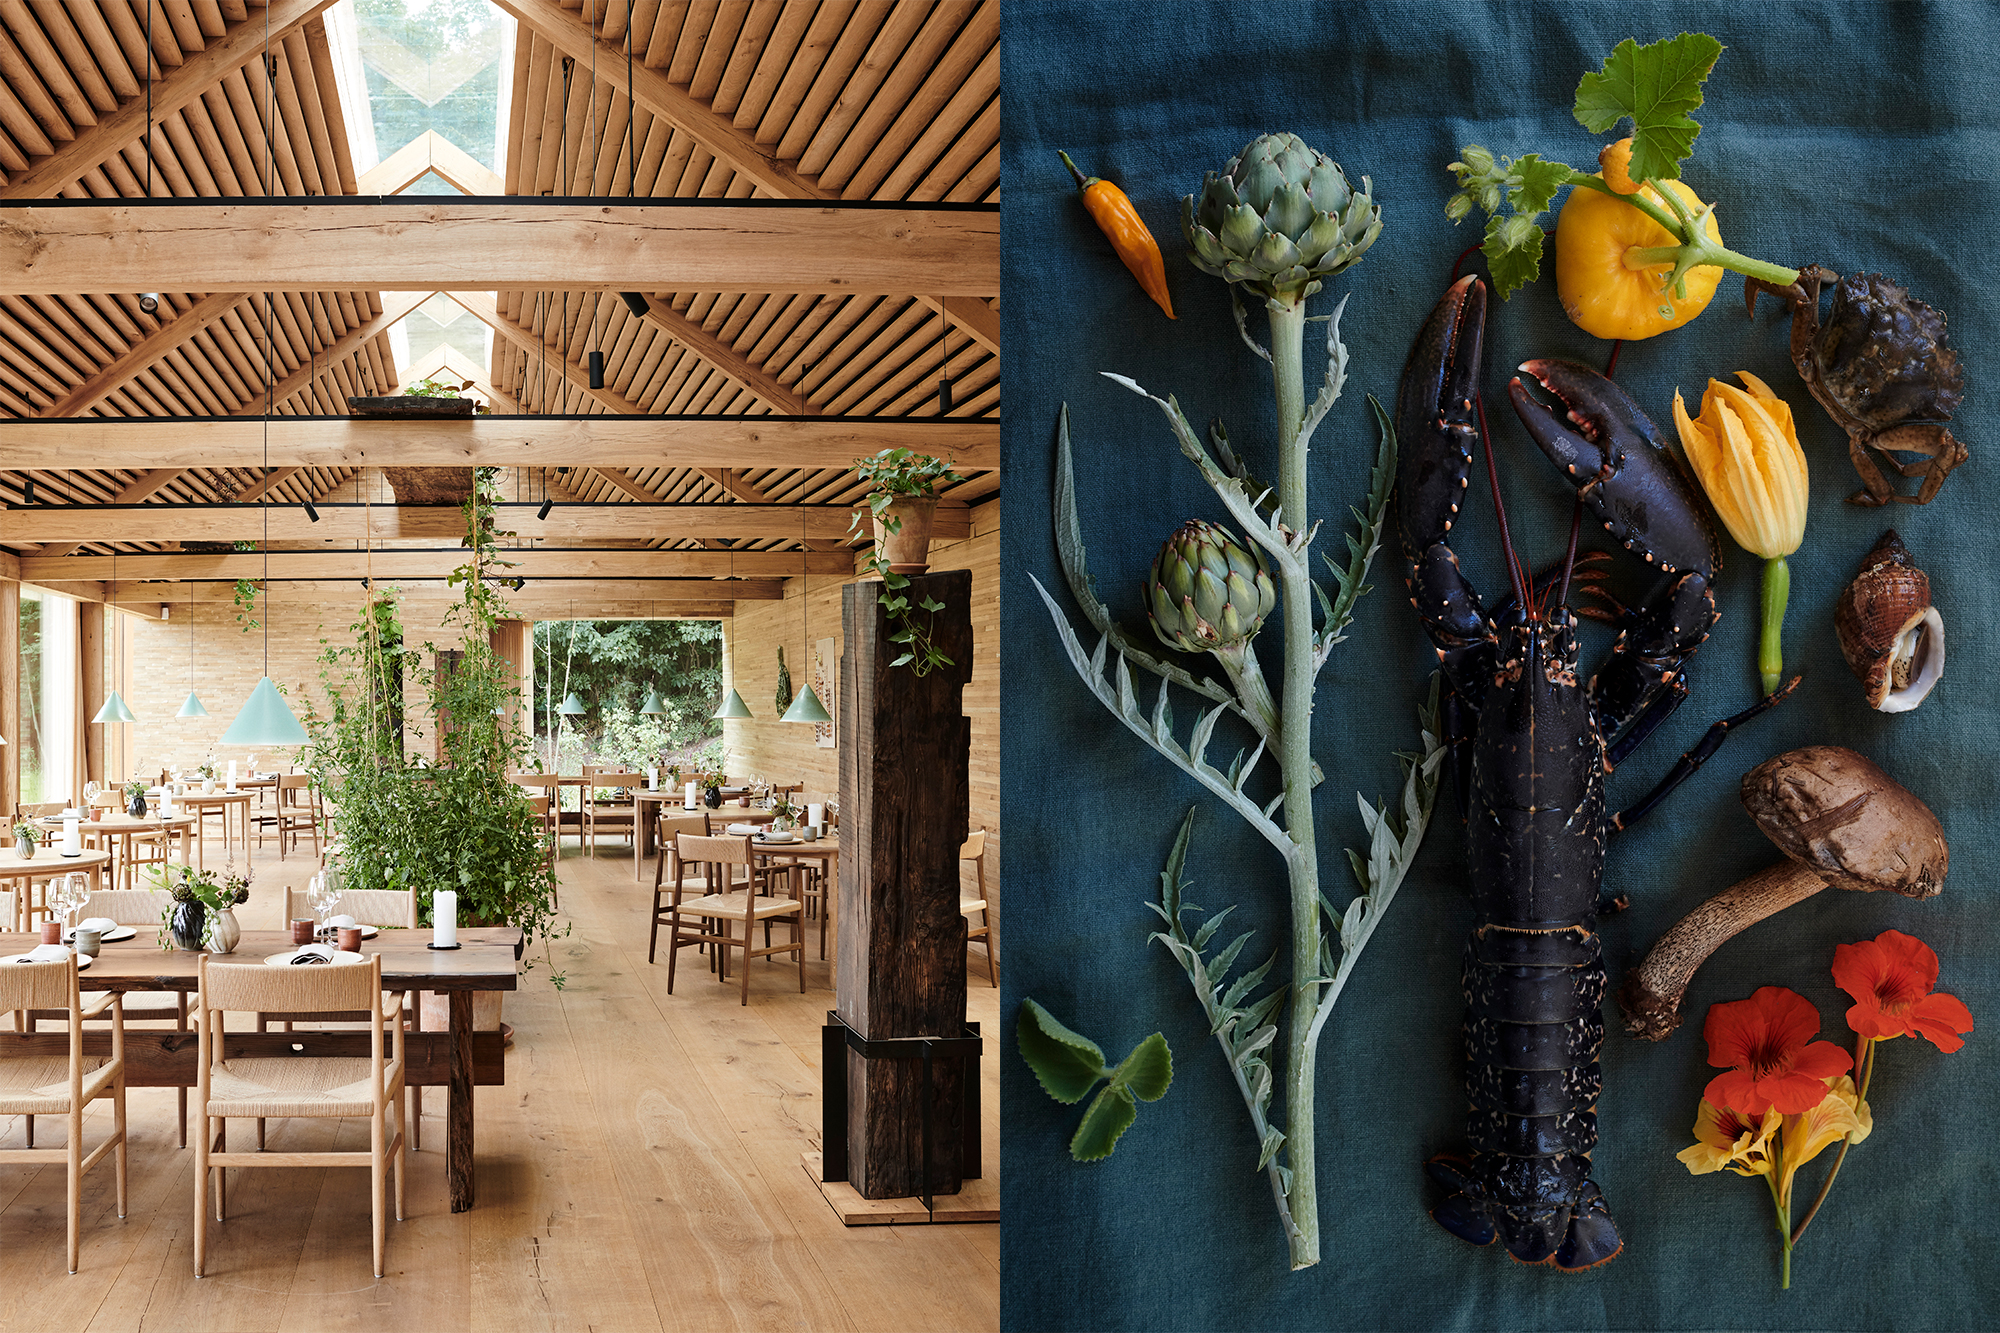 Noma interior and lobster photo